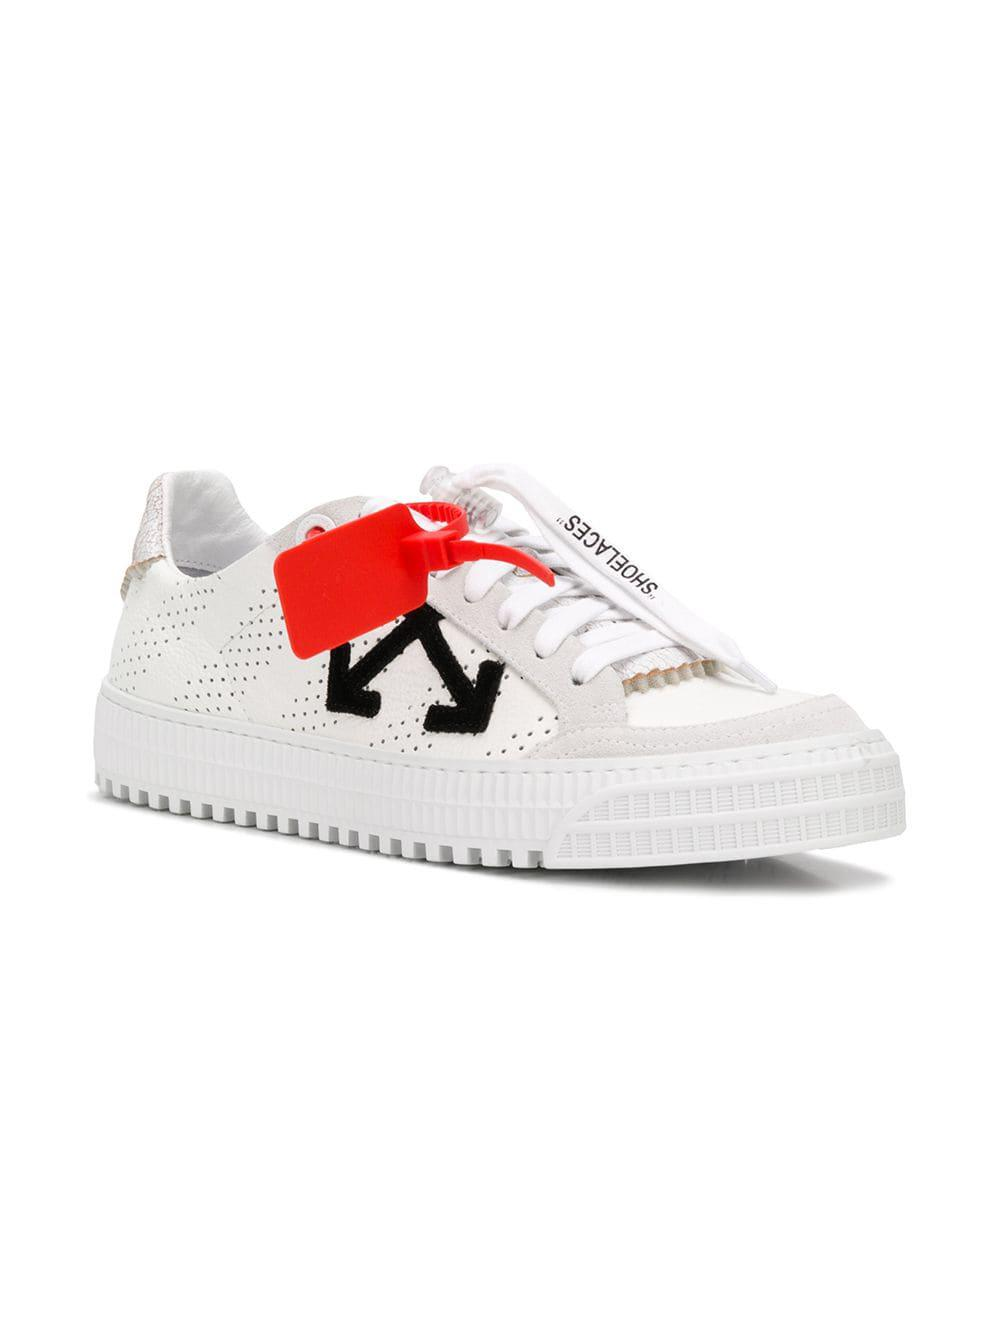 8092d442fd157 Lyst - Off-White c o Virgil Abloh Arrow Sneakers in White for Men - Save 26%